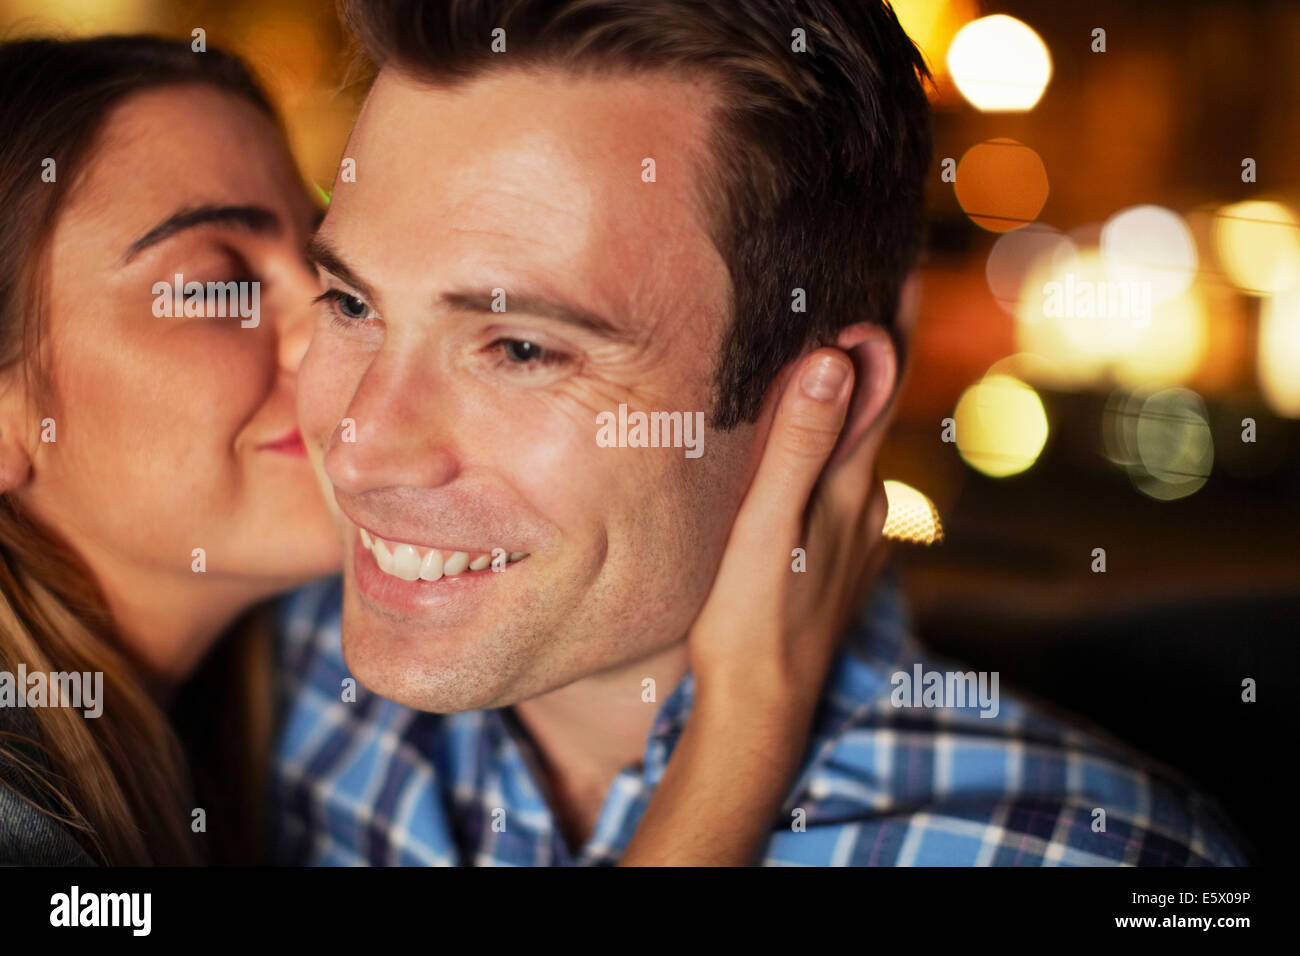 Couple sharing kiss on the cheek in city taxi at night - Stock Image